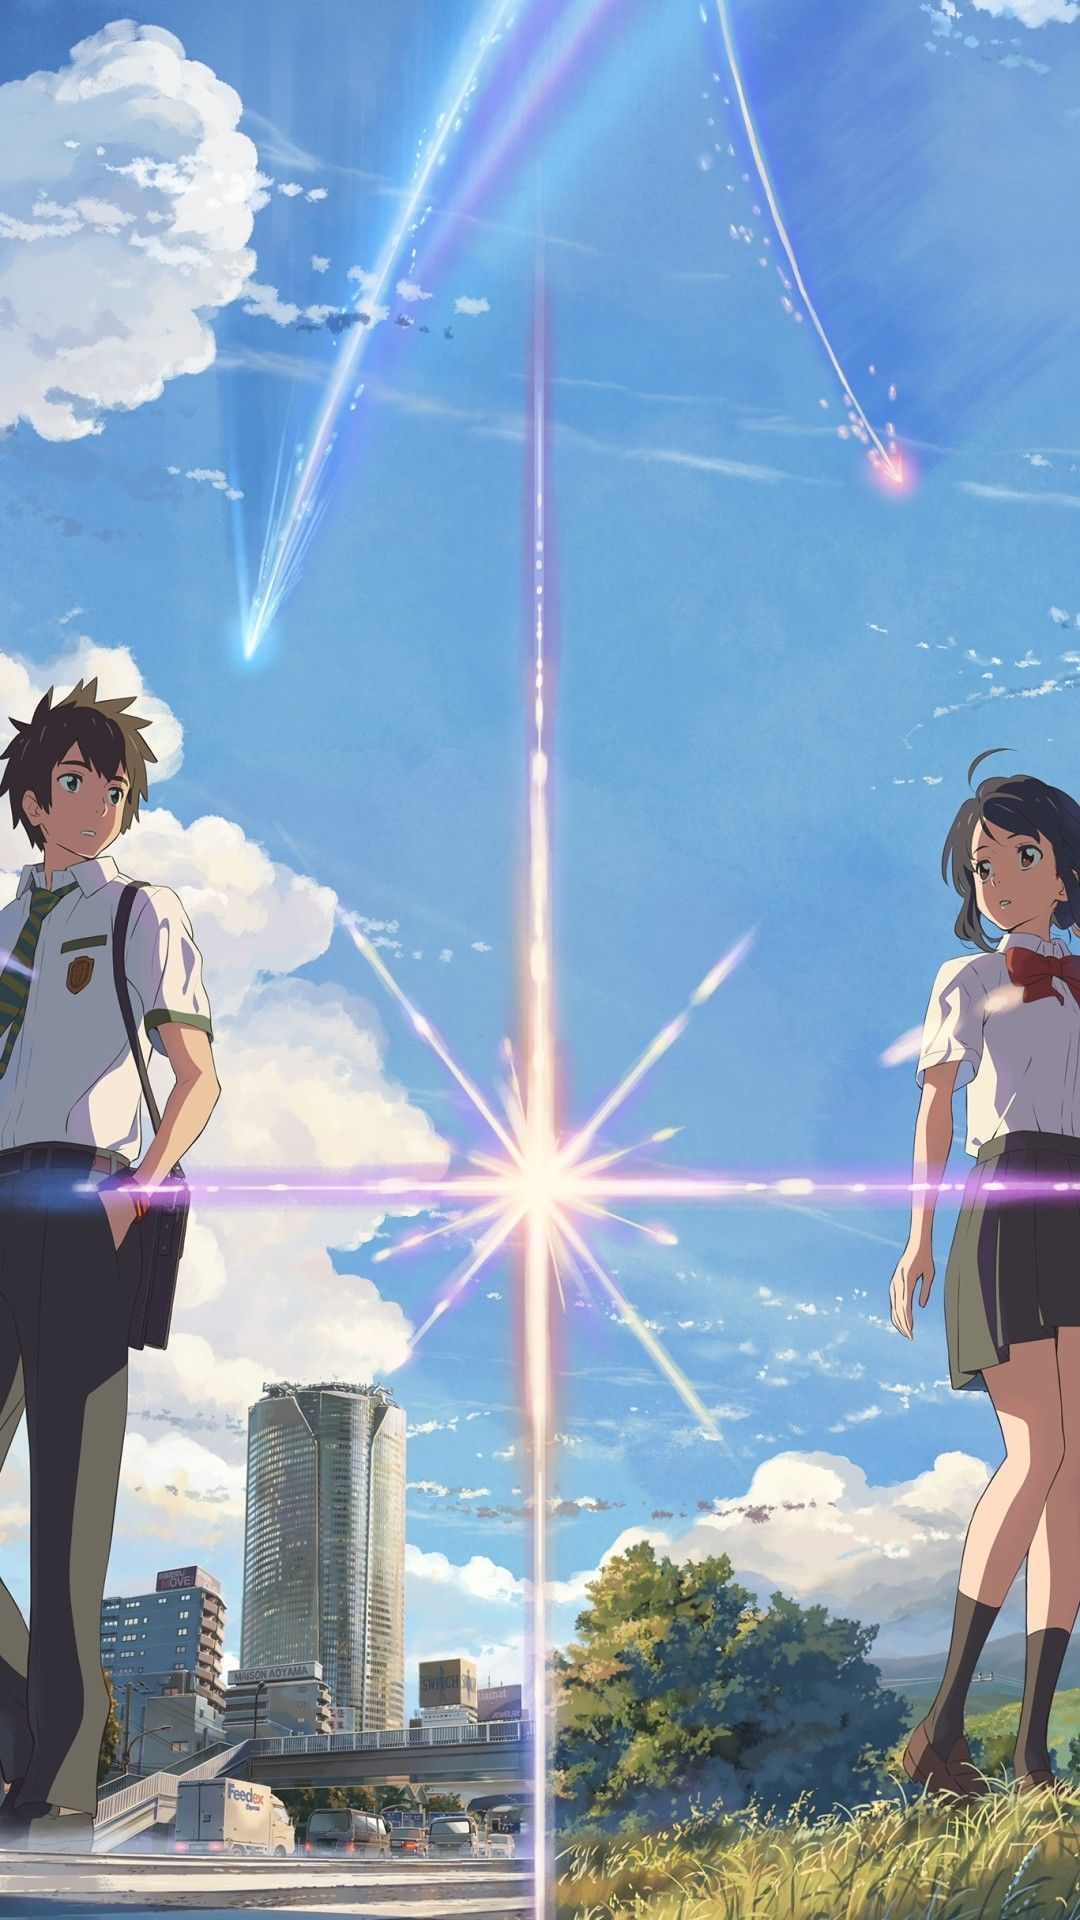 Get Best Anime Wallpaper Iphone Your Name New Iphone Wallpaper Iphone Wallpaper In 2020 Your Name Wallpaper Kimi No Na Wa Wallpaper Name Wallpaper